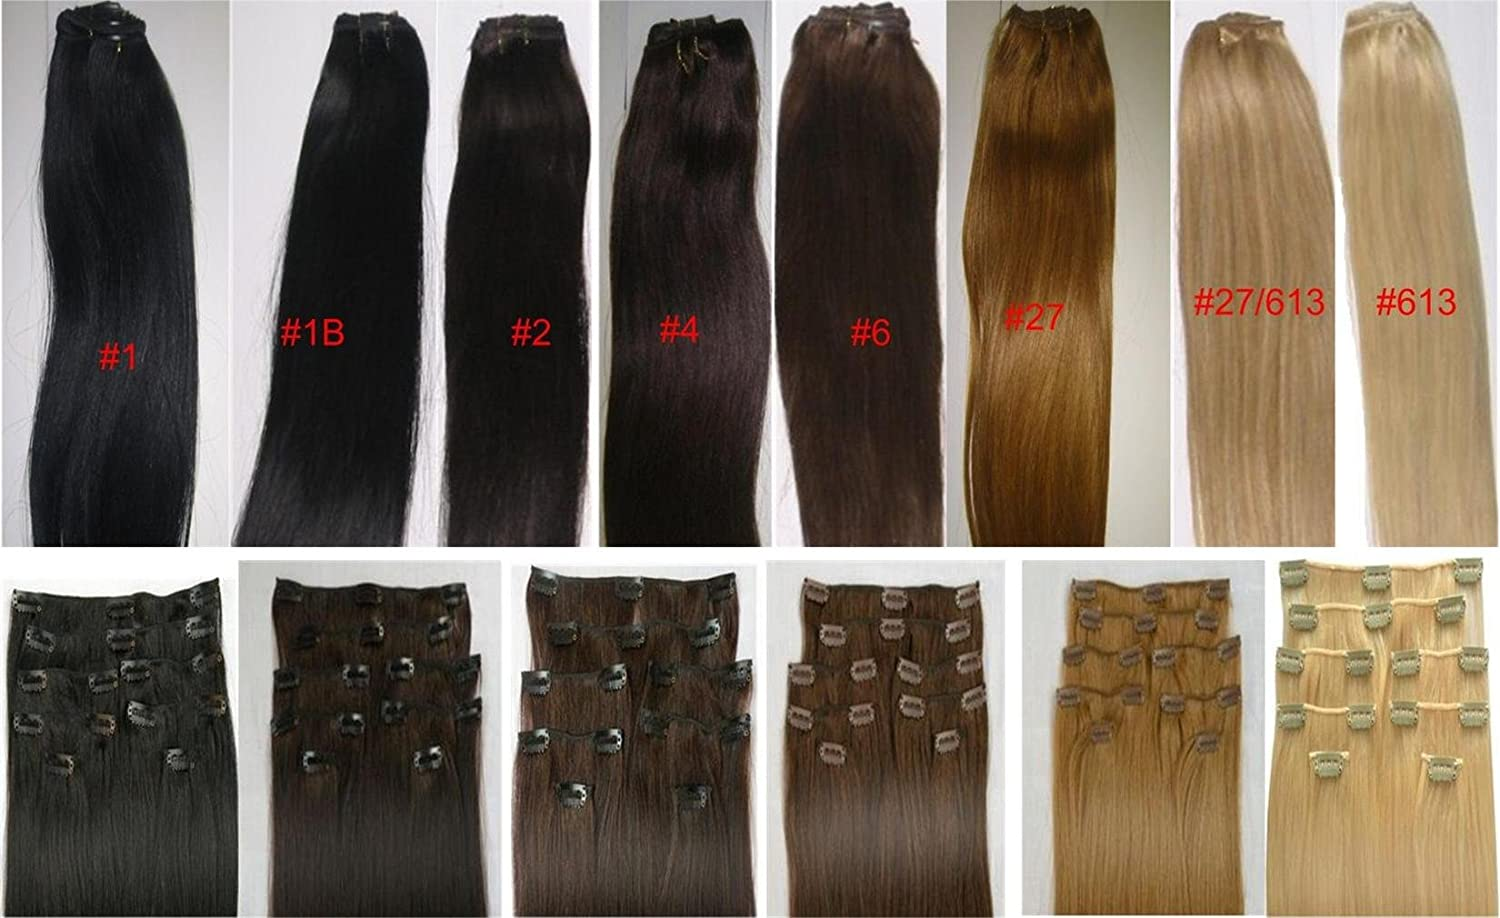 Amazon 18 clip in human hair extensions 10pcs 100g color amazon 18 clip in human hair extensions 10pcs 100g color 2 dark brown health personal care pmusecretfo Image collections